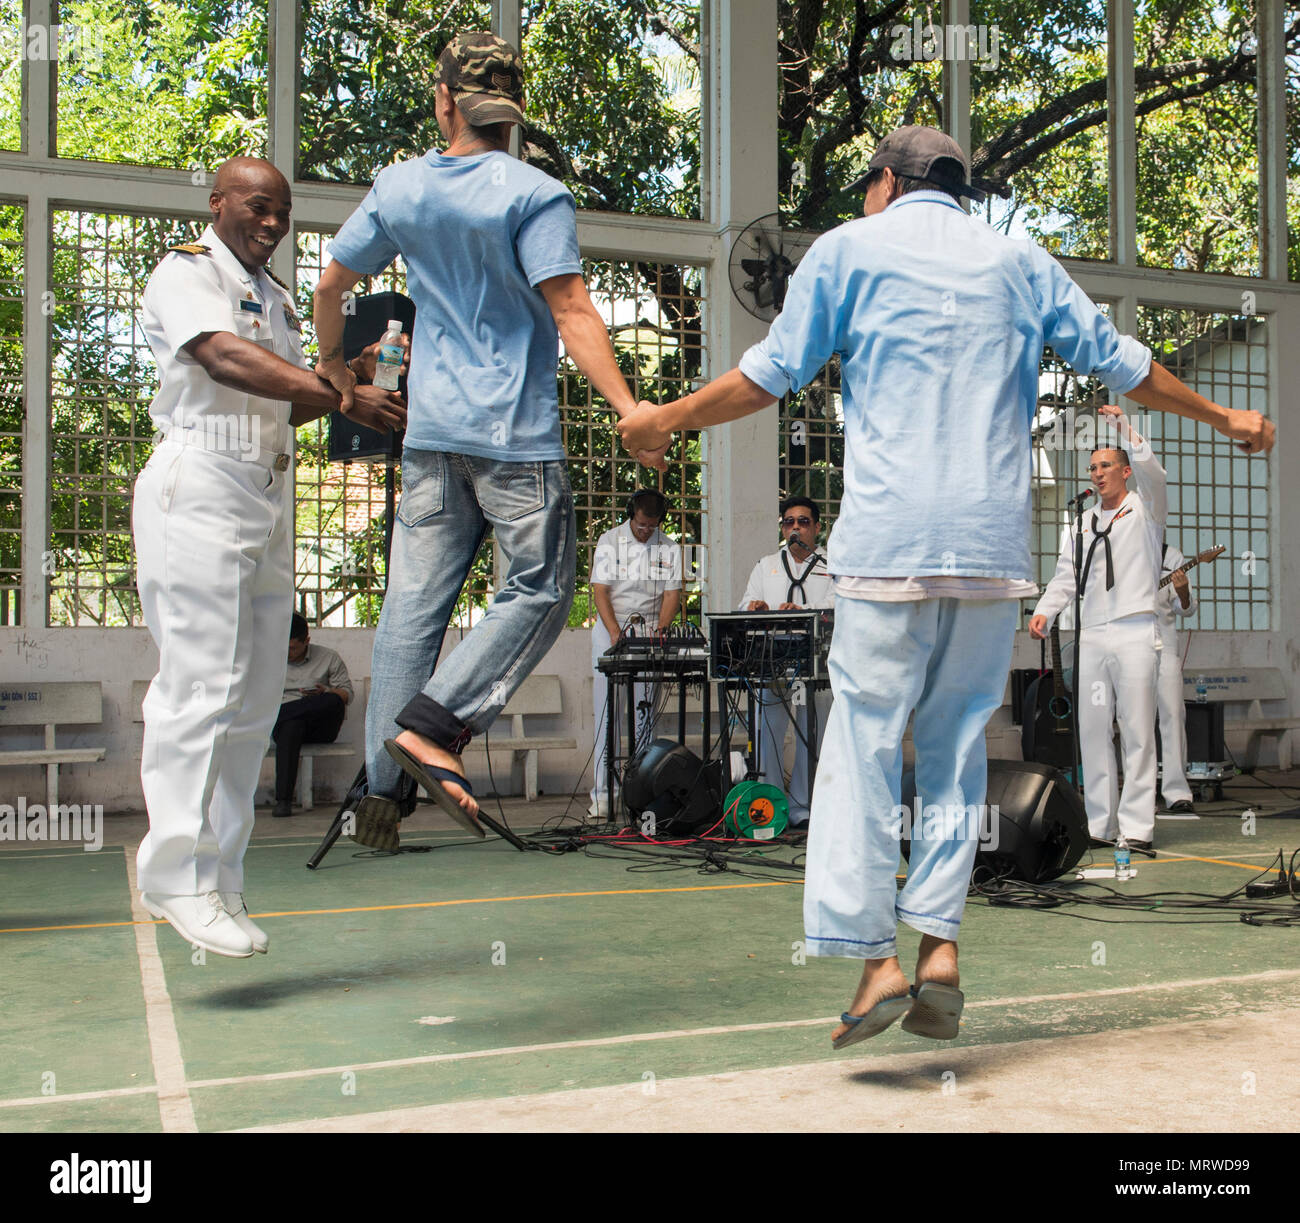 170707-N-OU129-189 KHANH HOA, Vietnam (July 7, 2017) Capt. Lex Walker, commodore, Destroyer Squadron 7, dances with residents and staff of Khanh Hoa Specialty Mental Hospital during a performance by the U.S. 7th Fleet Band, Orient Express as a part of Naval Engagement Activity (NEA) Vietnam 2017 July 7. The engagement provides an opportunity for Sailors from the U.S. and Vietnam People's Navy to interact and share knowledge to enhance mutual capabilities and strengthen solid partnerships with the local community. (U.S. Navy photo by Mass Communication Specialist 2nd Class Joshua Fulton/Release Stock Photo